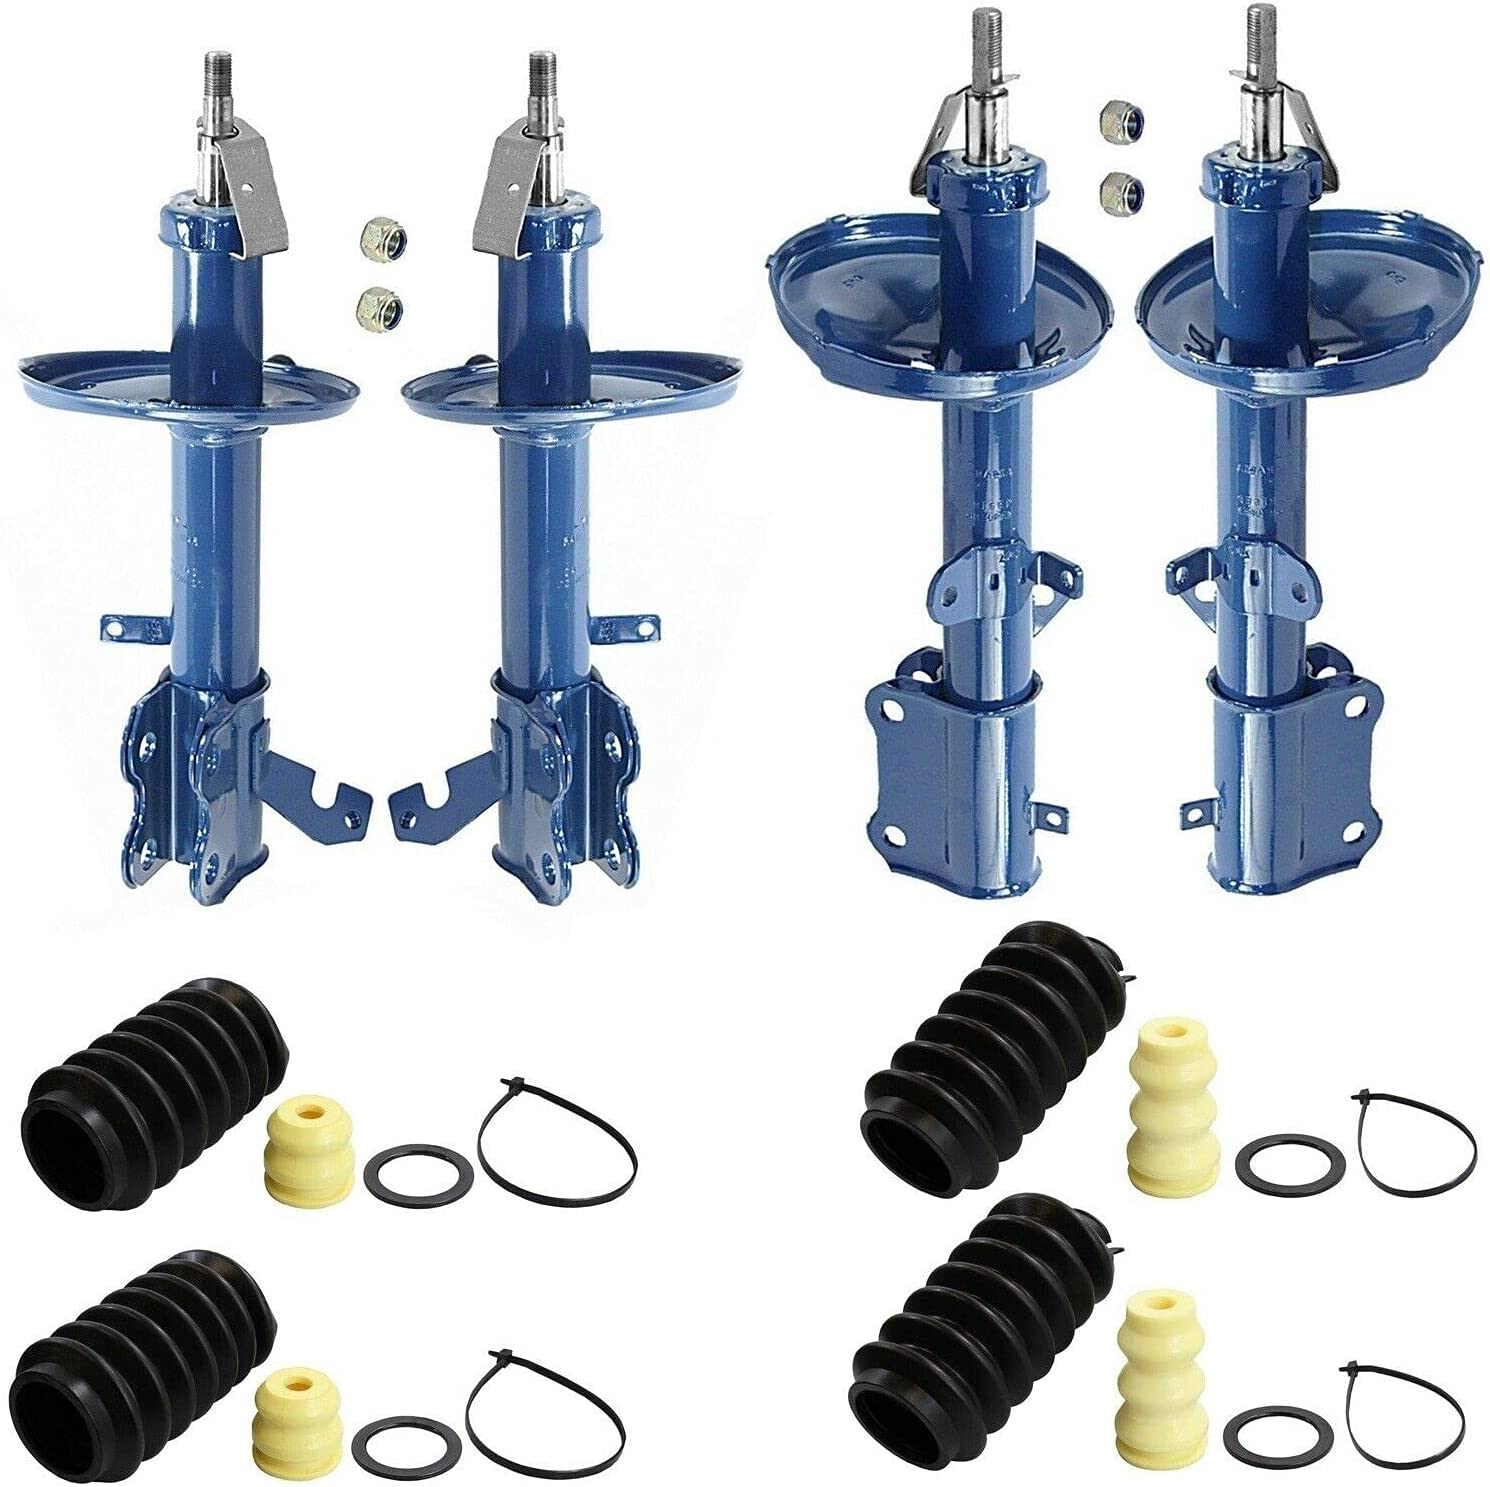 Front shopping and Rear Struts with Compatible Bellows Chevy kit Bargain Geo